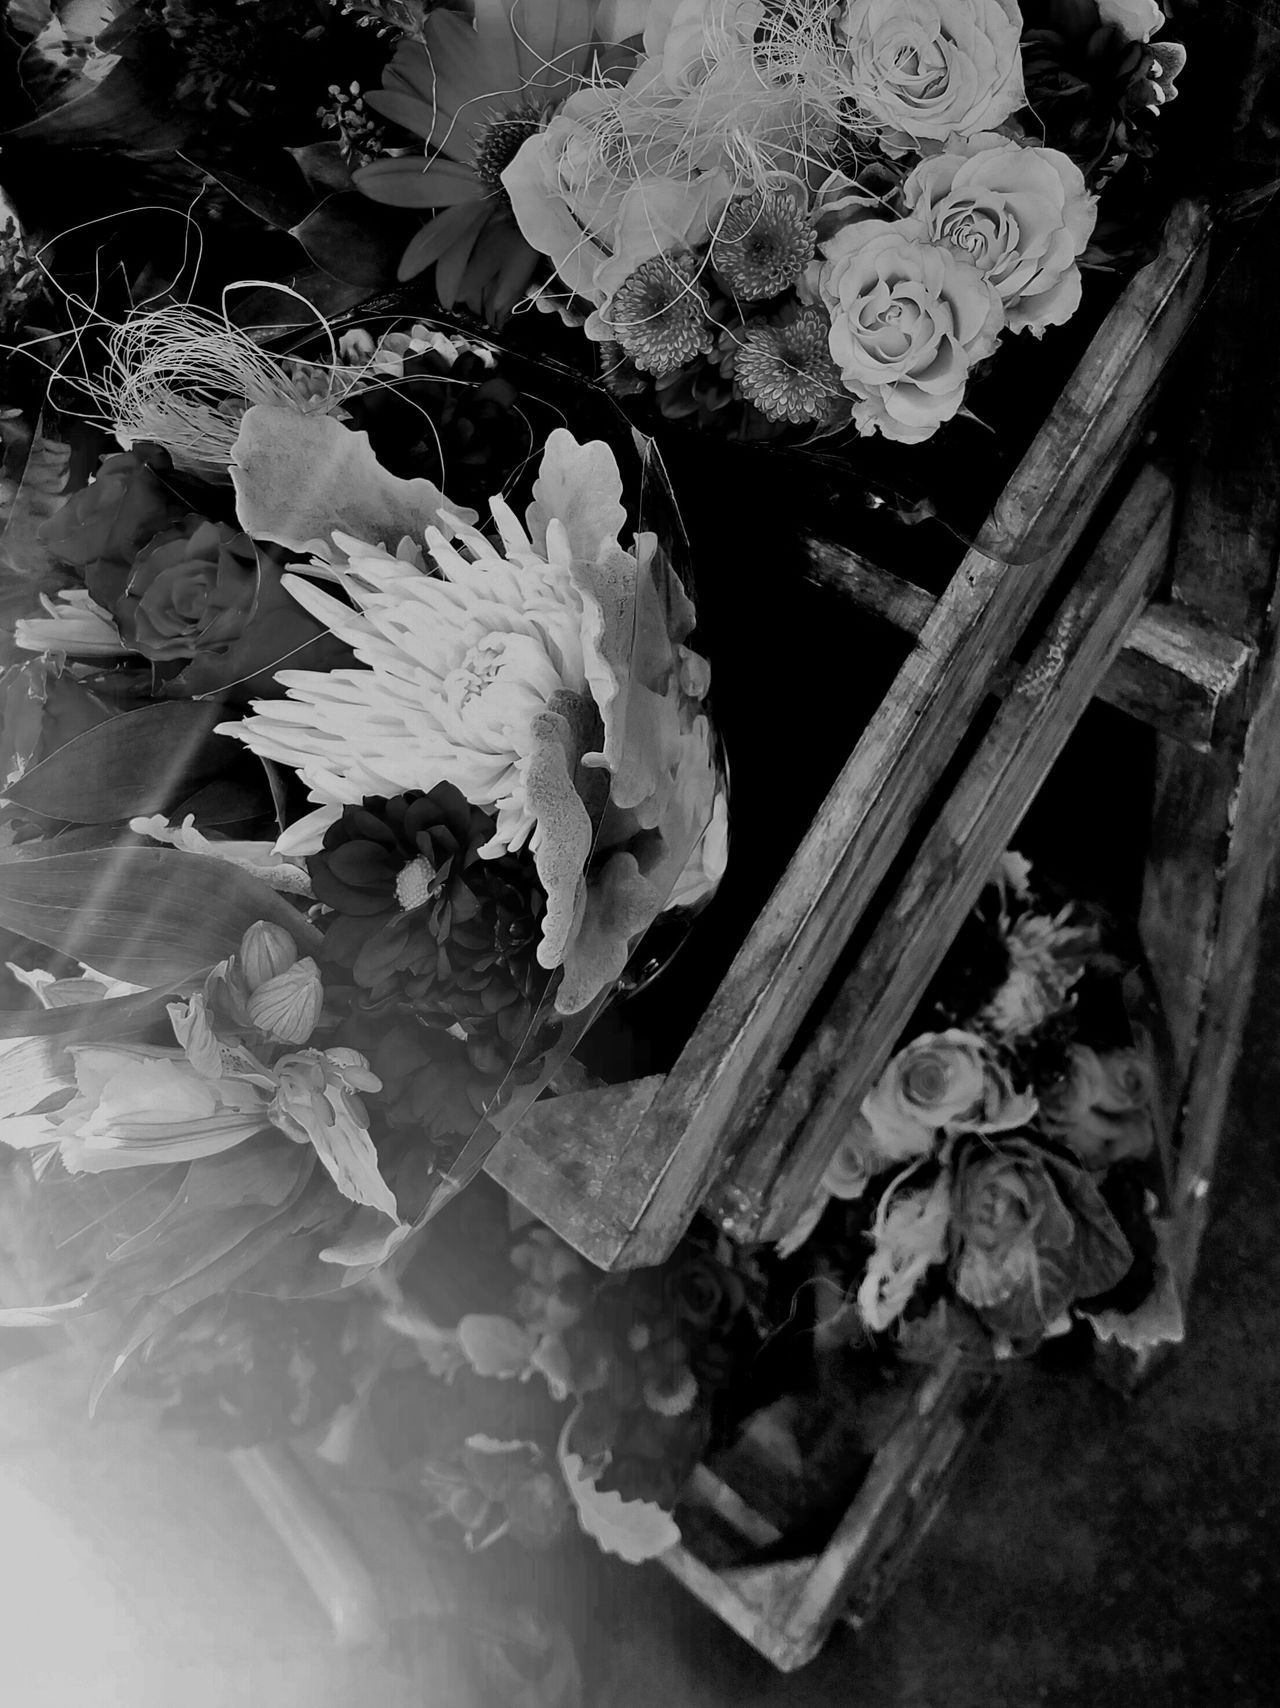 B&W Flowers Stand Beauty In Nature Blackandwhite Photography Close-up Day Fine Art Flower Flower Arrangement Flower Head Fragility Freshness Indoors  MUR B&W Nature No People Petal